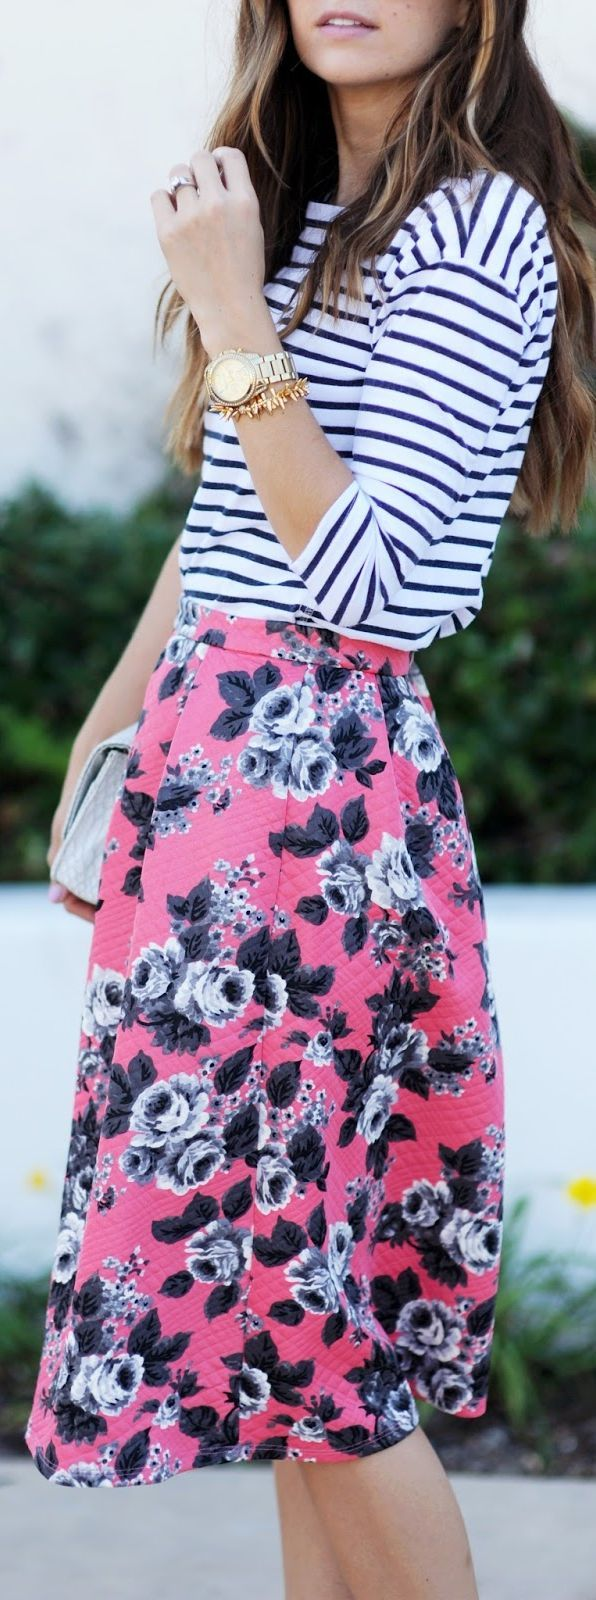 Mixing patterns! Wish I could do more of this. Love the midi skirt, cut and pattern, and always love navy stripes.